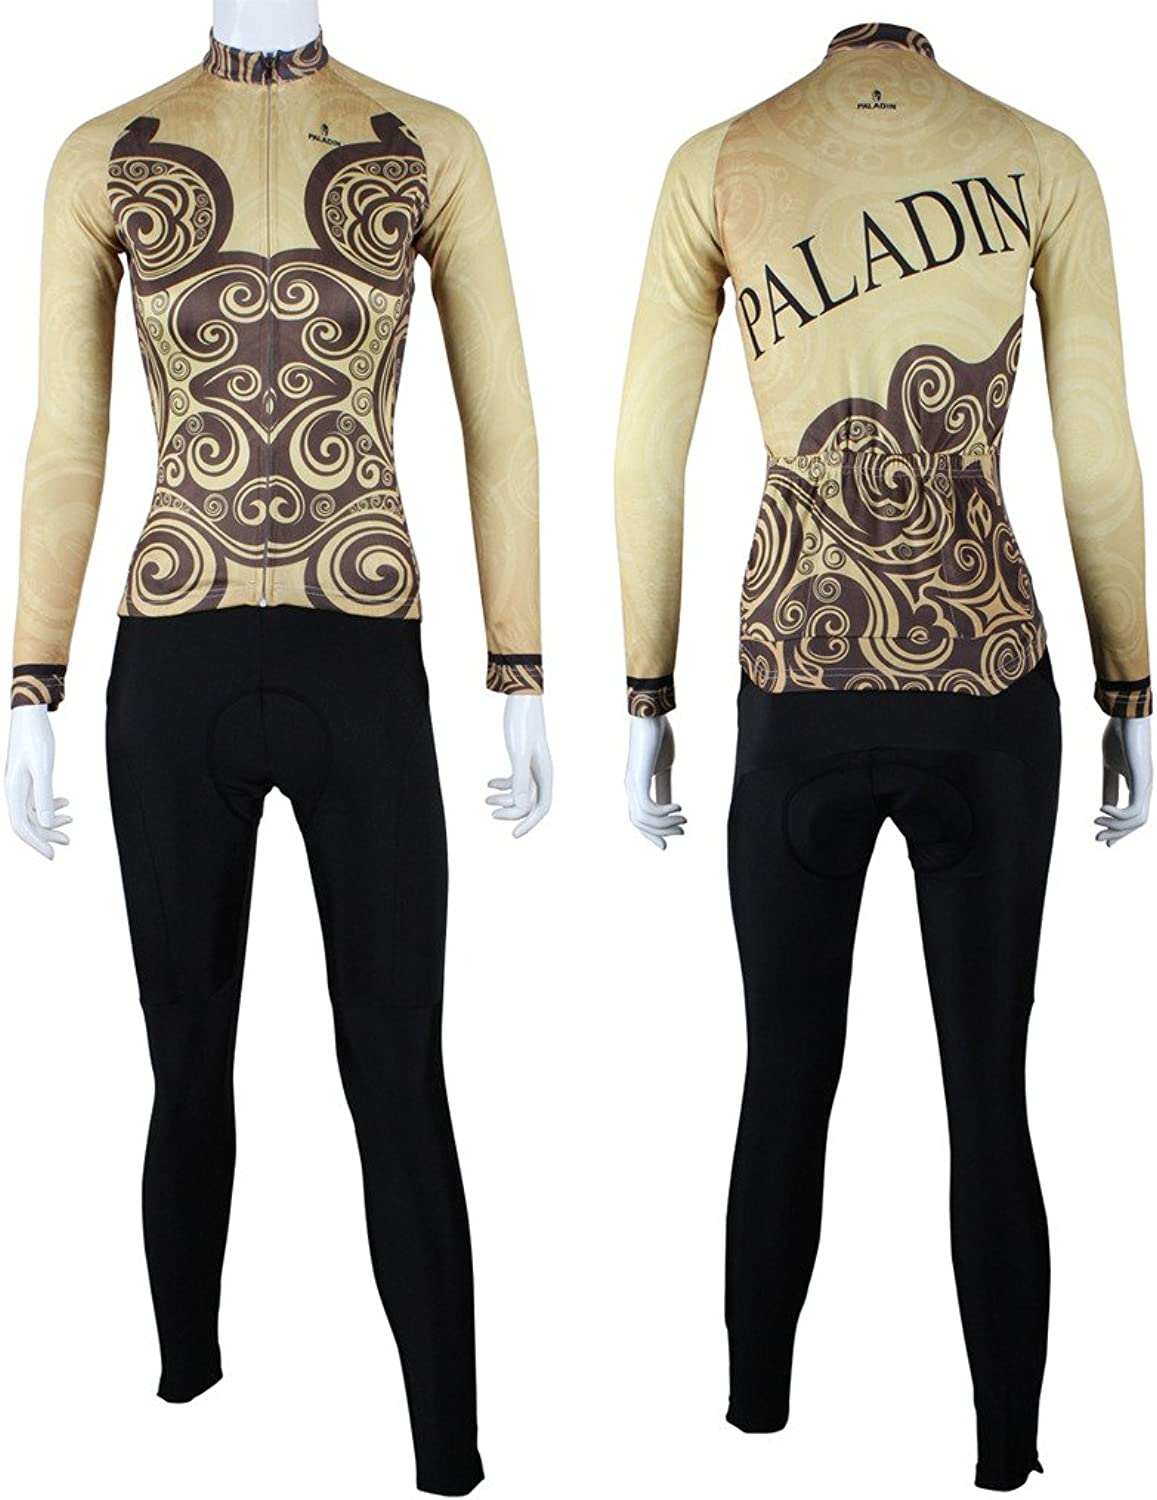 PaladinSport Symmetrical Pattern Women's Long Sleeve Bike Clothing